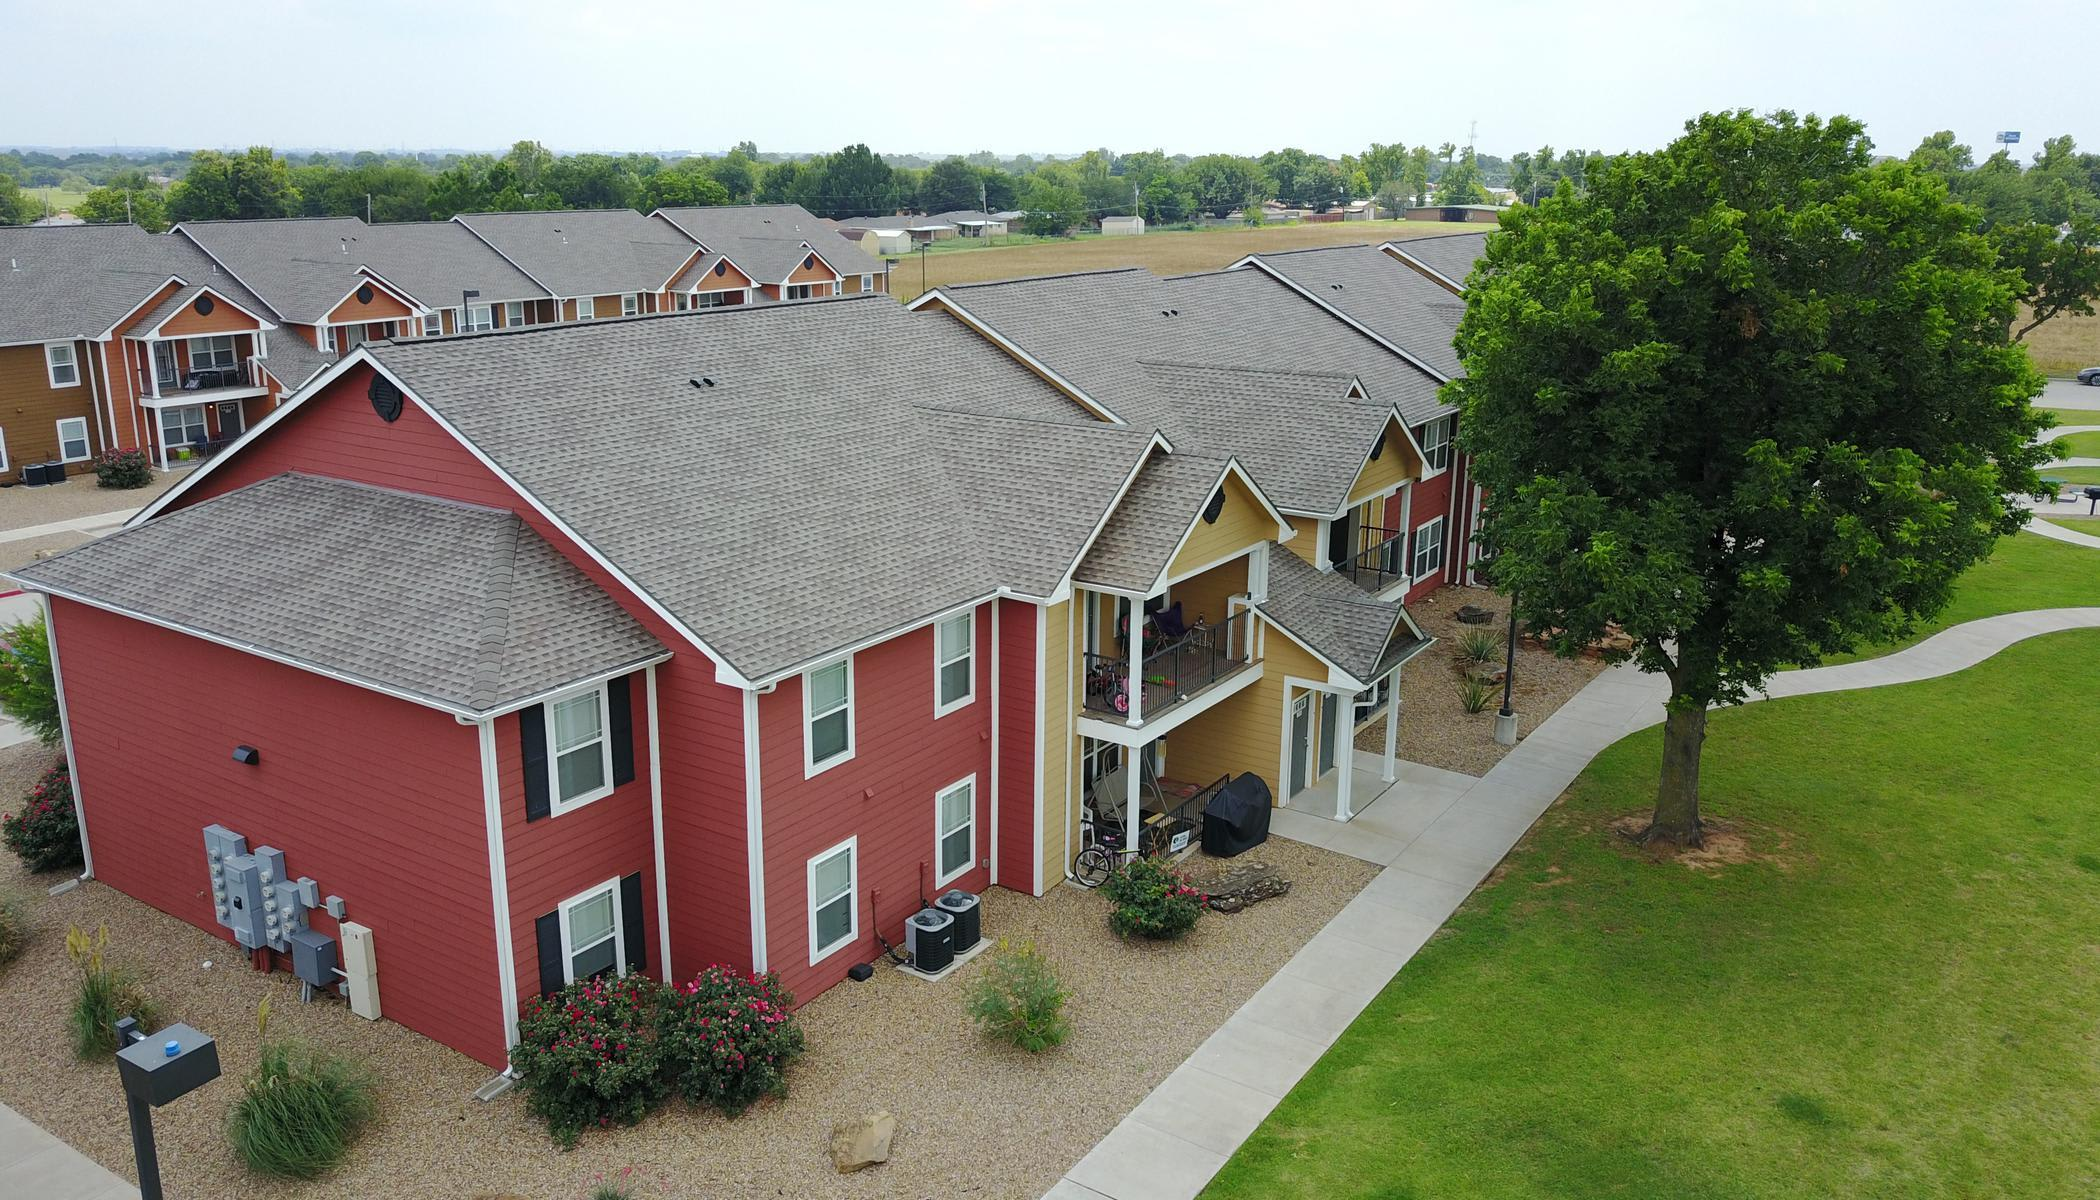 Apartments surrounded with courtyards at The Reserves at Saddlebrook in Burkburnett, TX